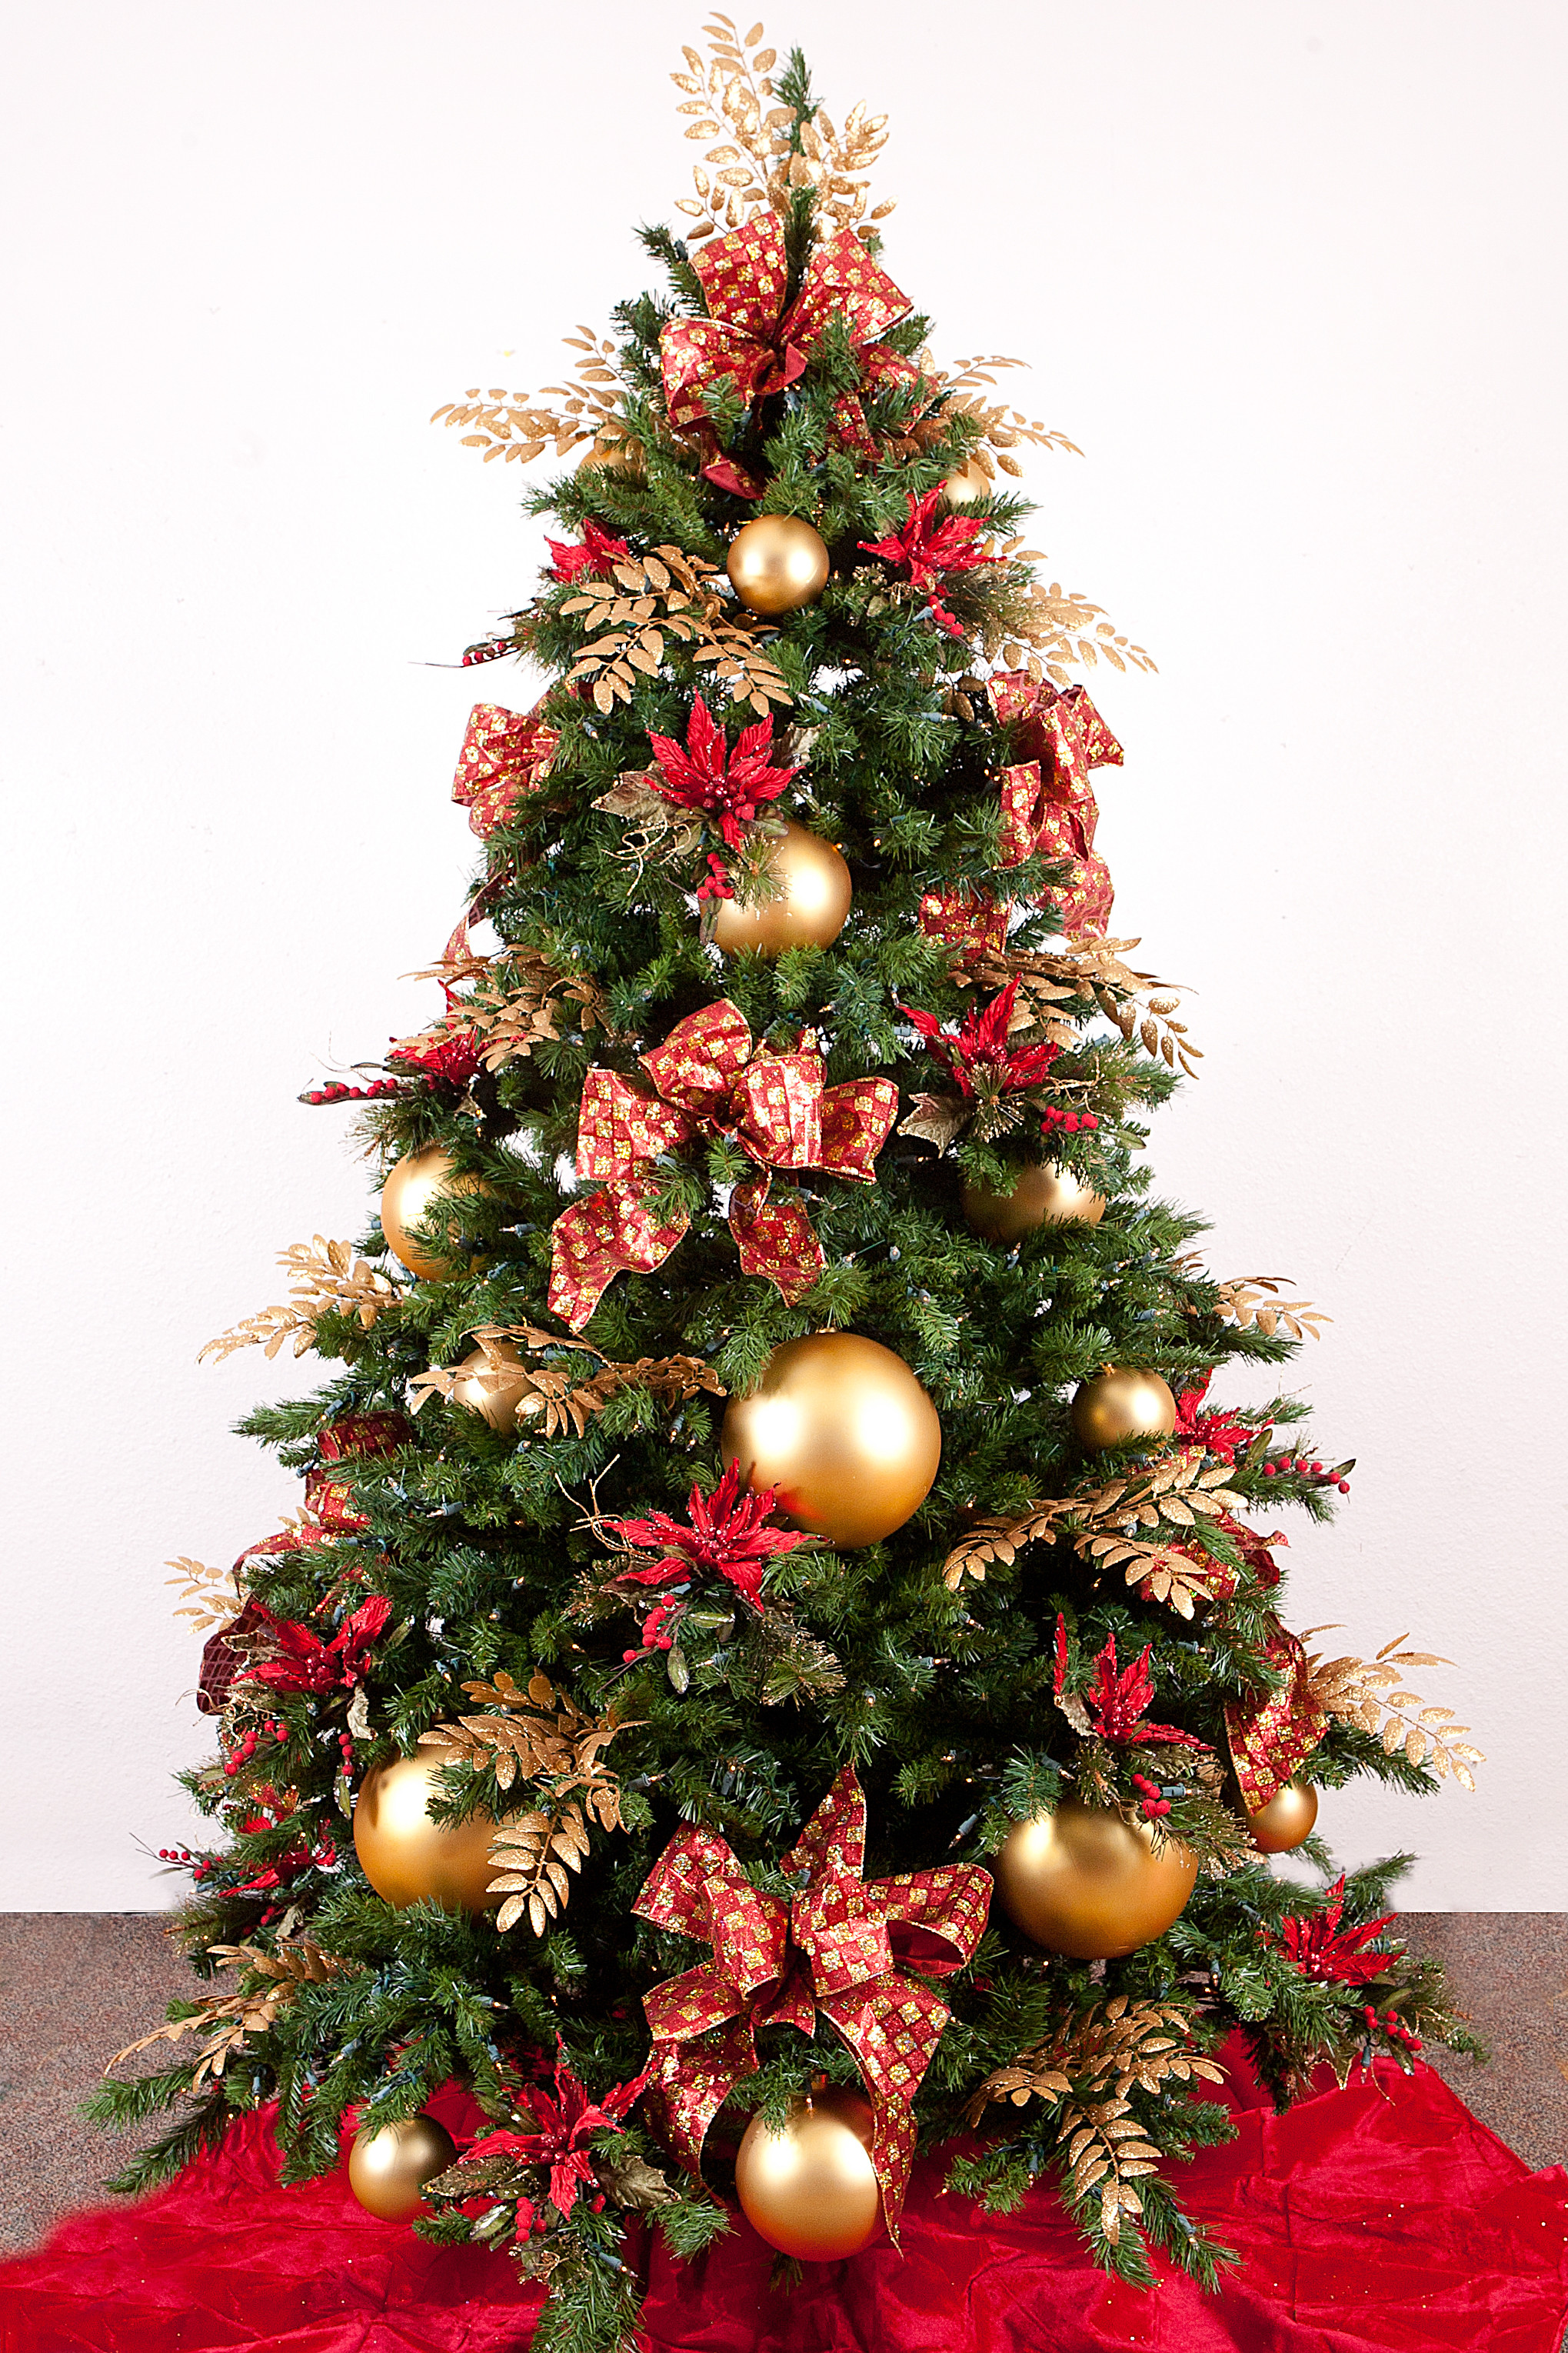 Best Of Christmas Tree Ideas Christmas Tree and Decorations Of Delightful 50 Pictures Christmas Tree and Decorations